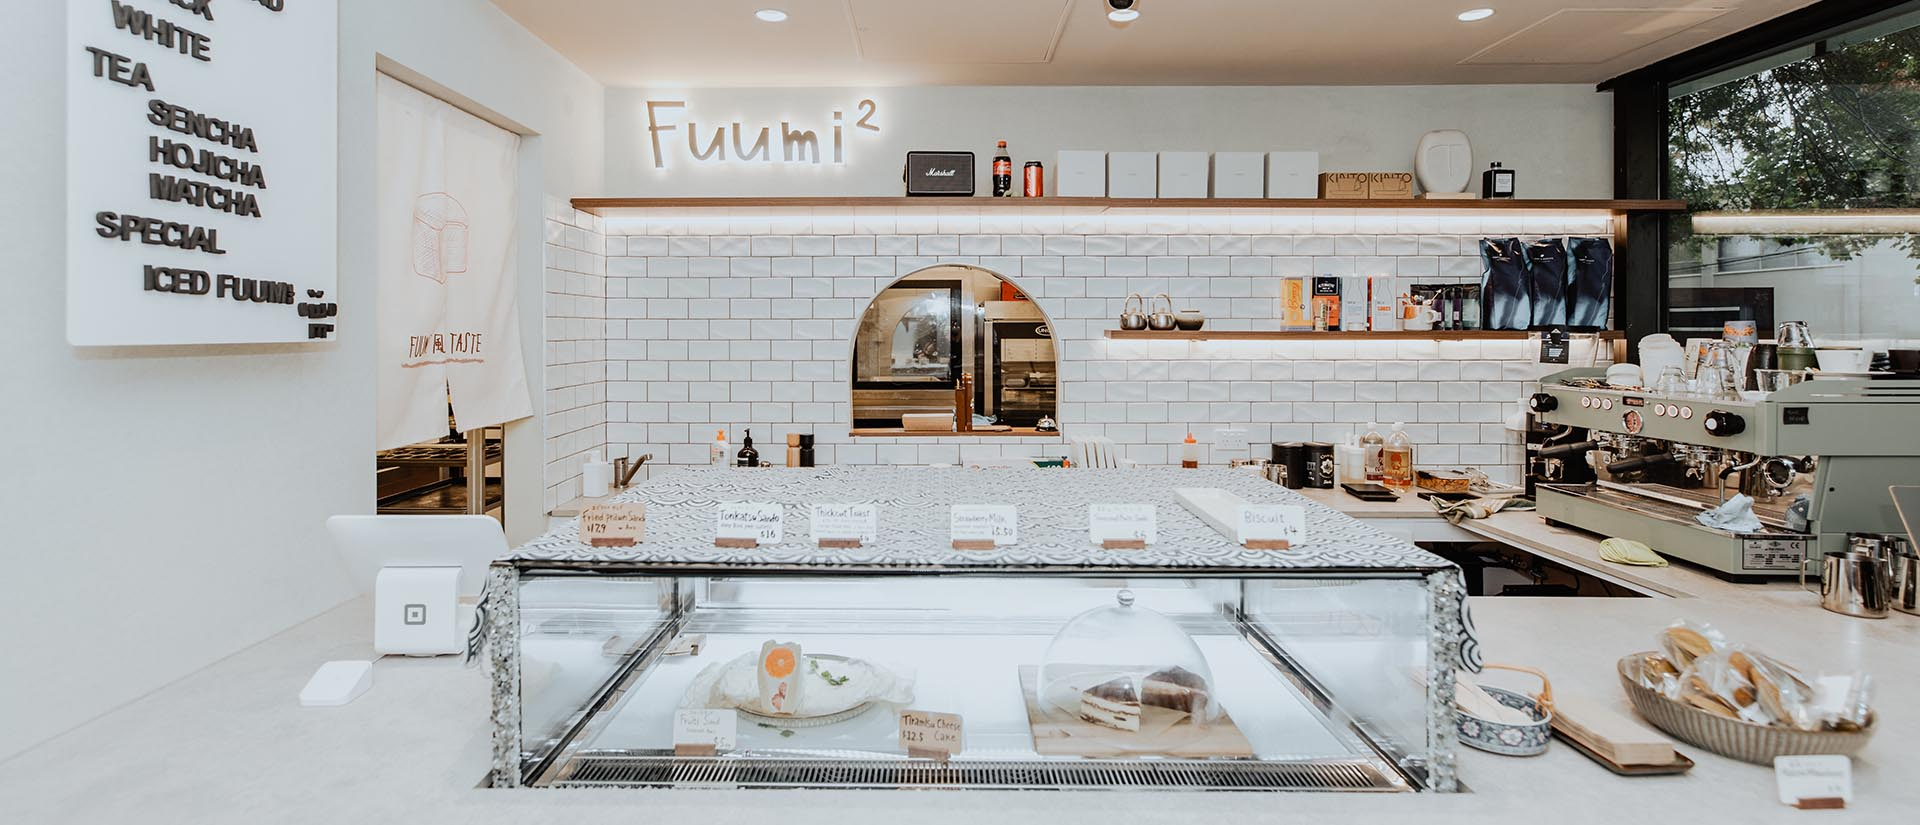 Projects-CafeCafe-Fuumi 2